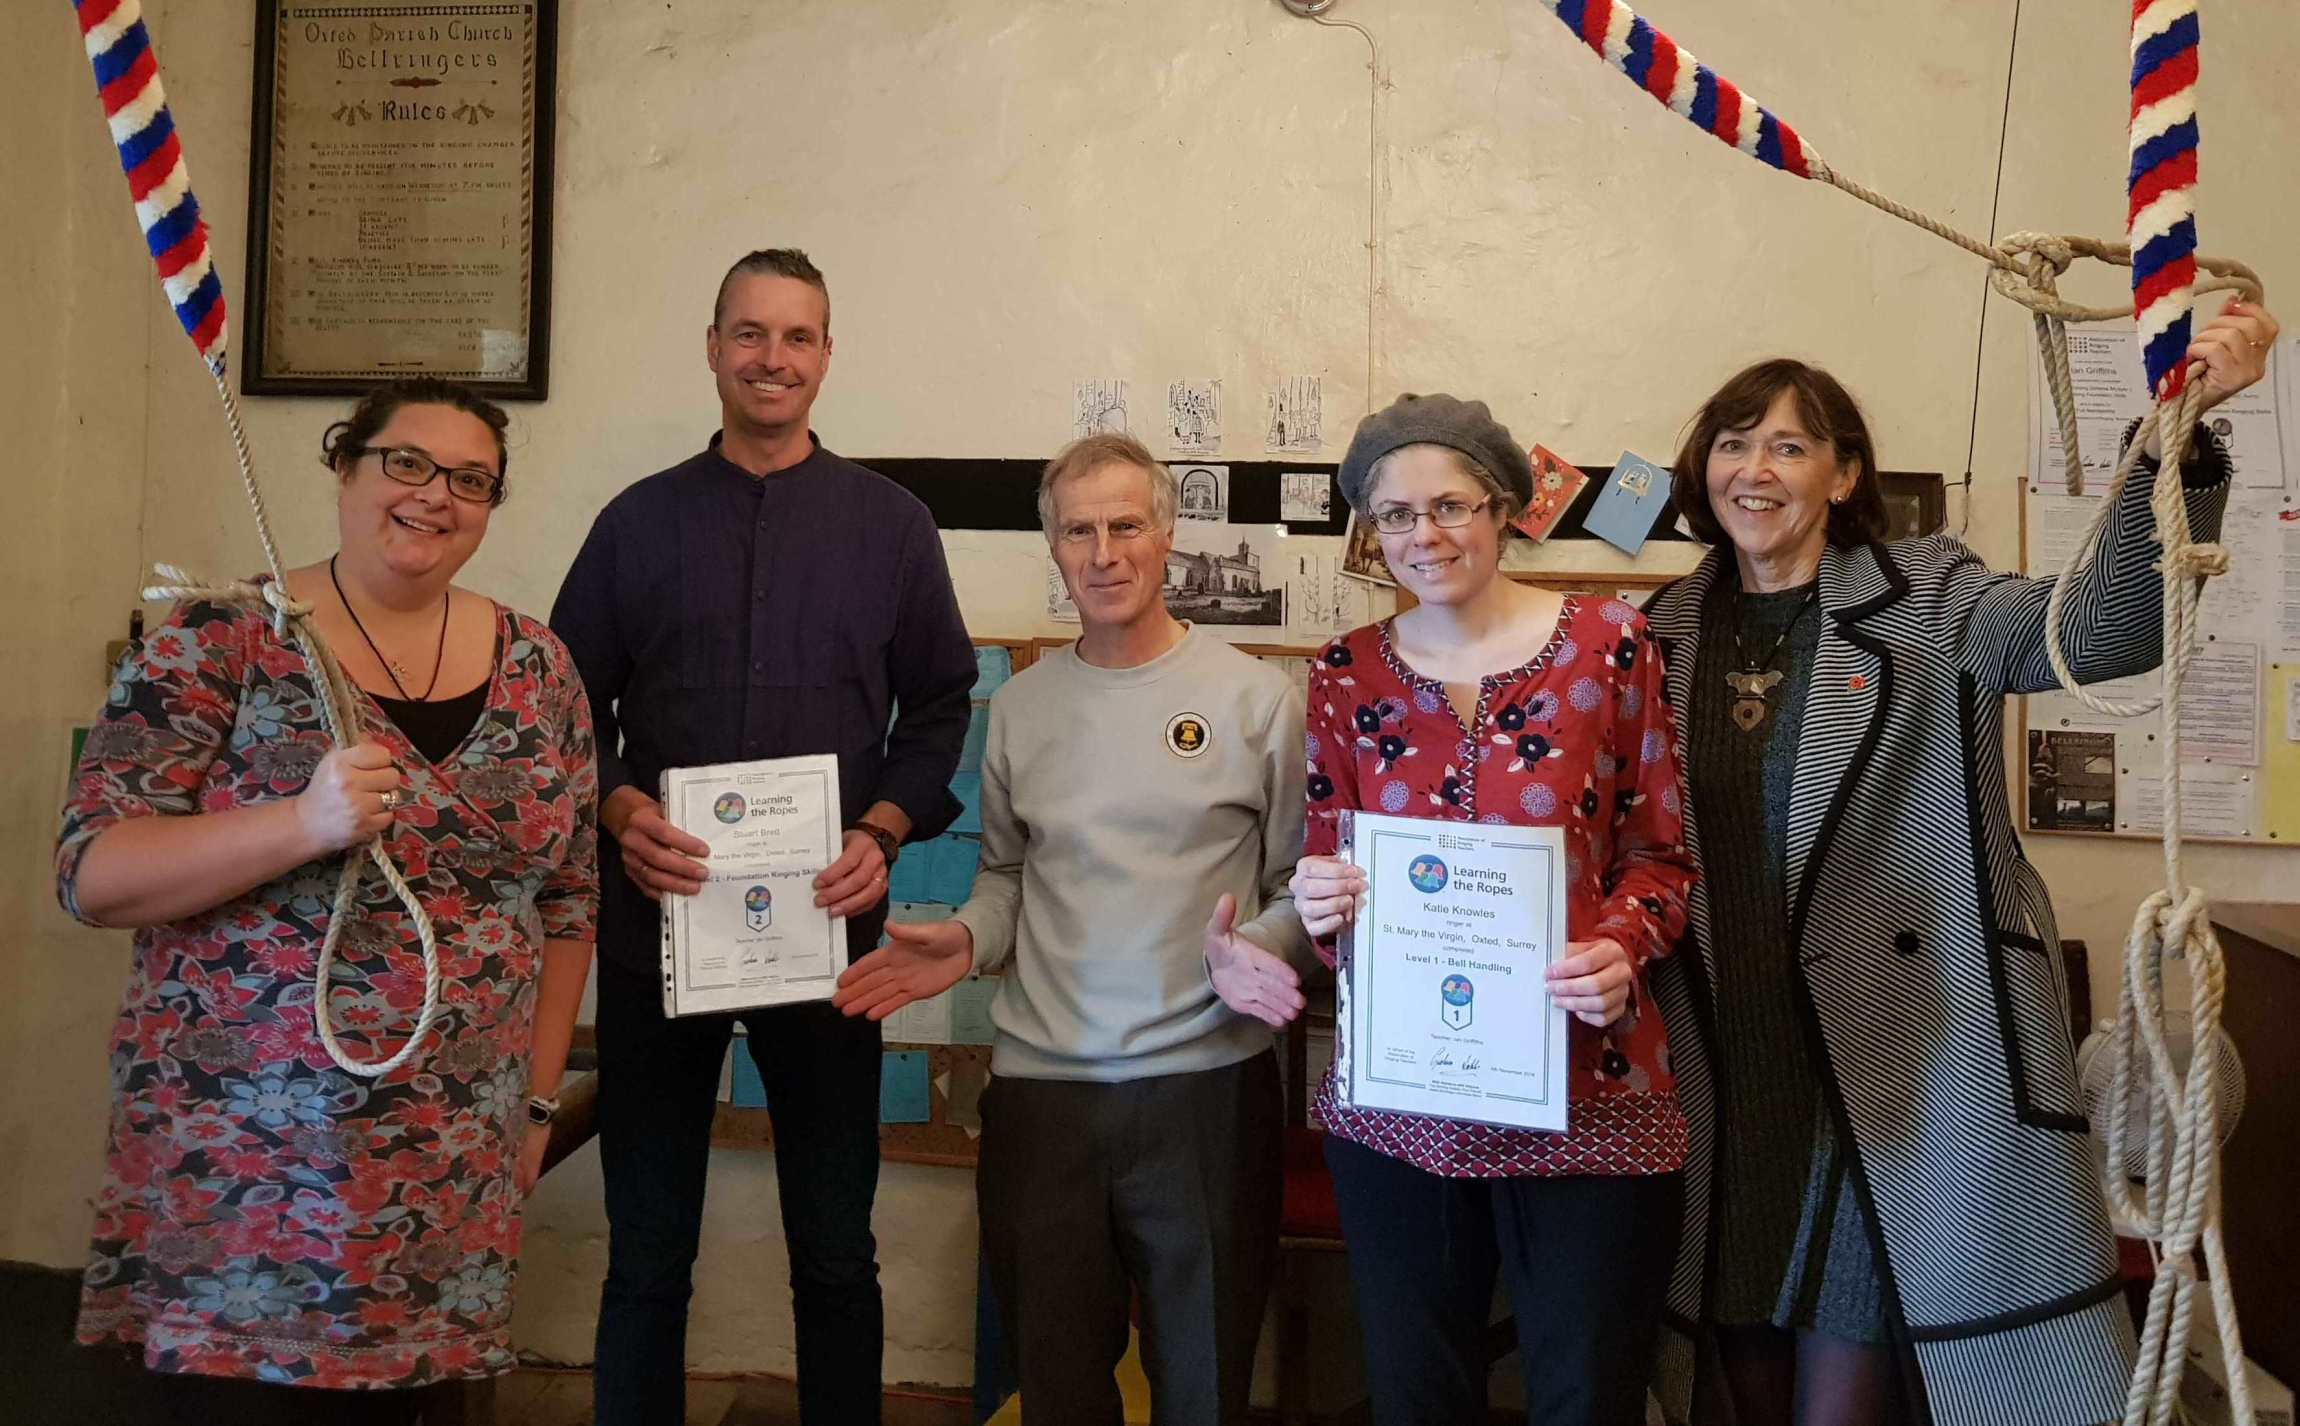 Presentation of ART certificates on Remembrance Day to Stuart Brett (L2) and Katie Knowles (L1) by Ian Griffiths (tutor).  Also Nikki Paintin (left) and Rosalyn Dale (right).